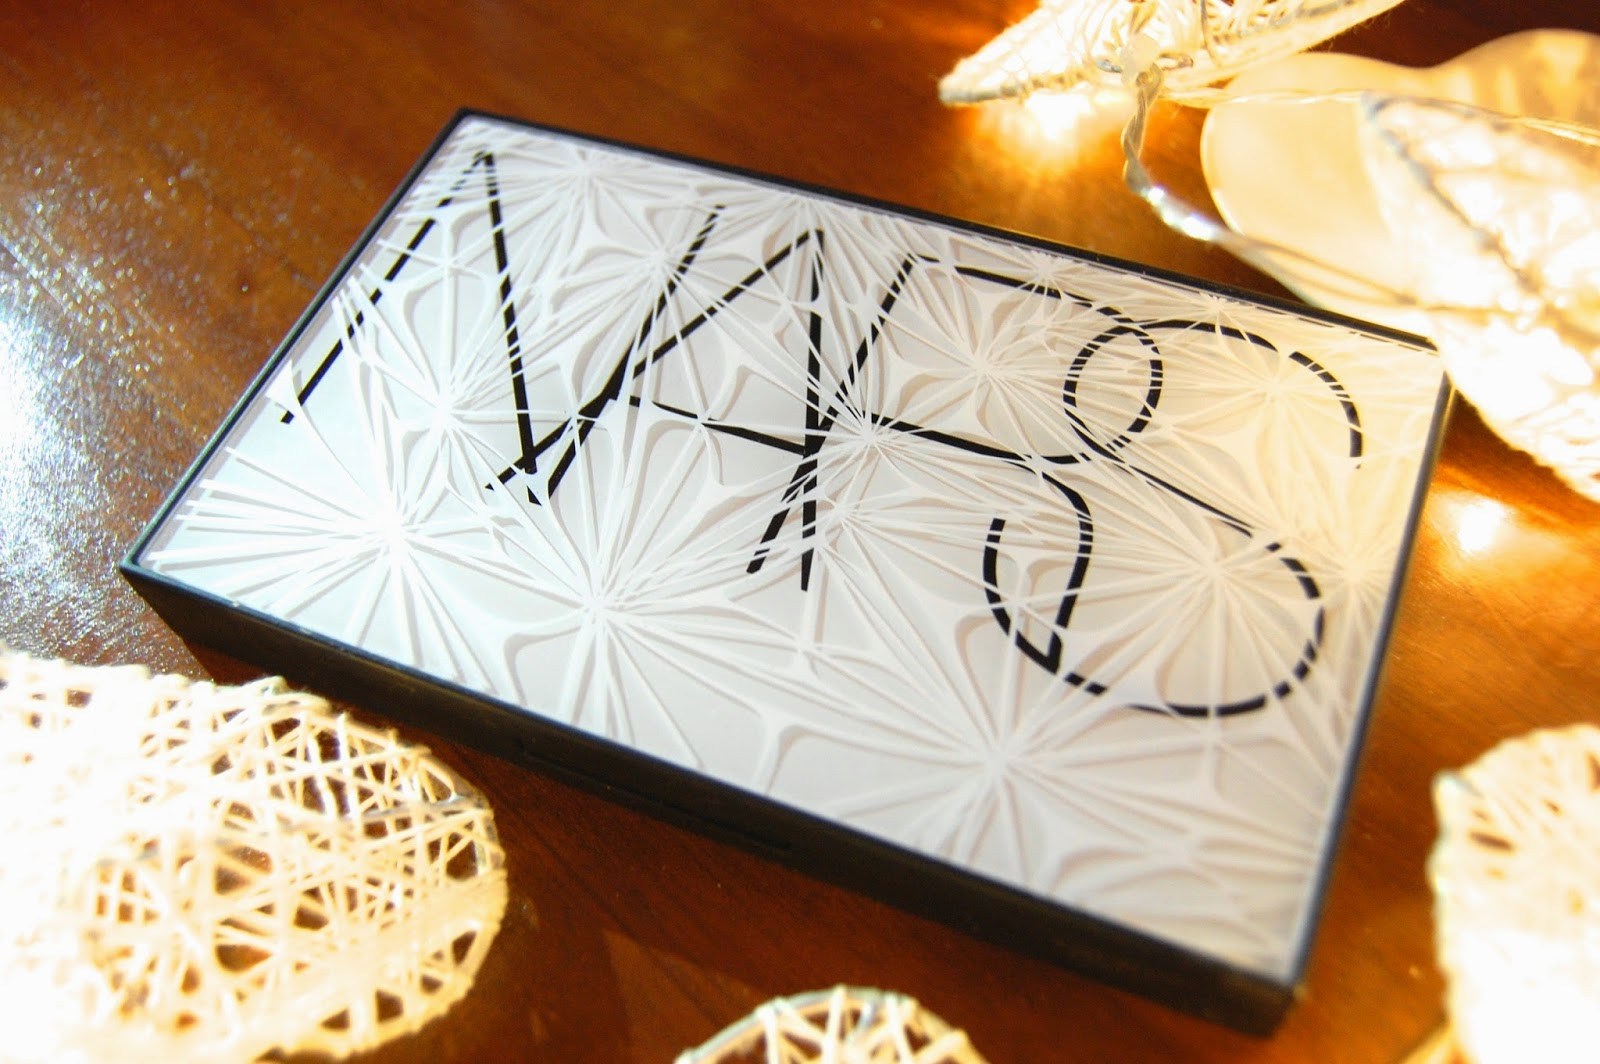 nars, virtual domination, palette, make up, mua, beauty